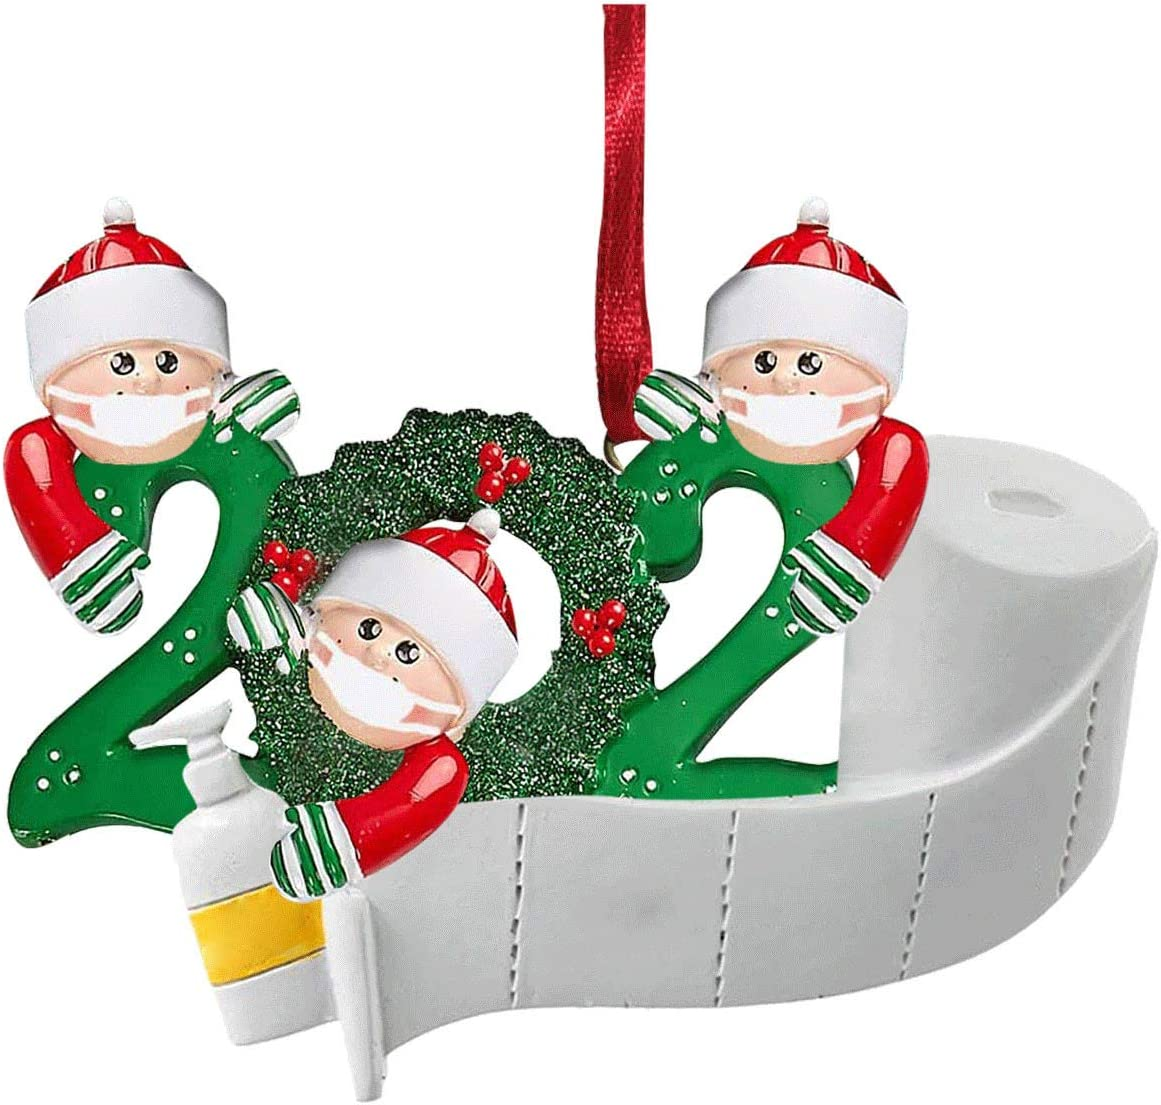 GN109 2020 Christmas Decorations Ornaments Indoor 2020 Personalized 1-6 Family Members Name Family Customized Decorating Set DIY Gift Christmas Decor (3 People)